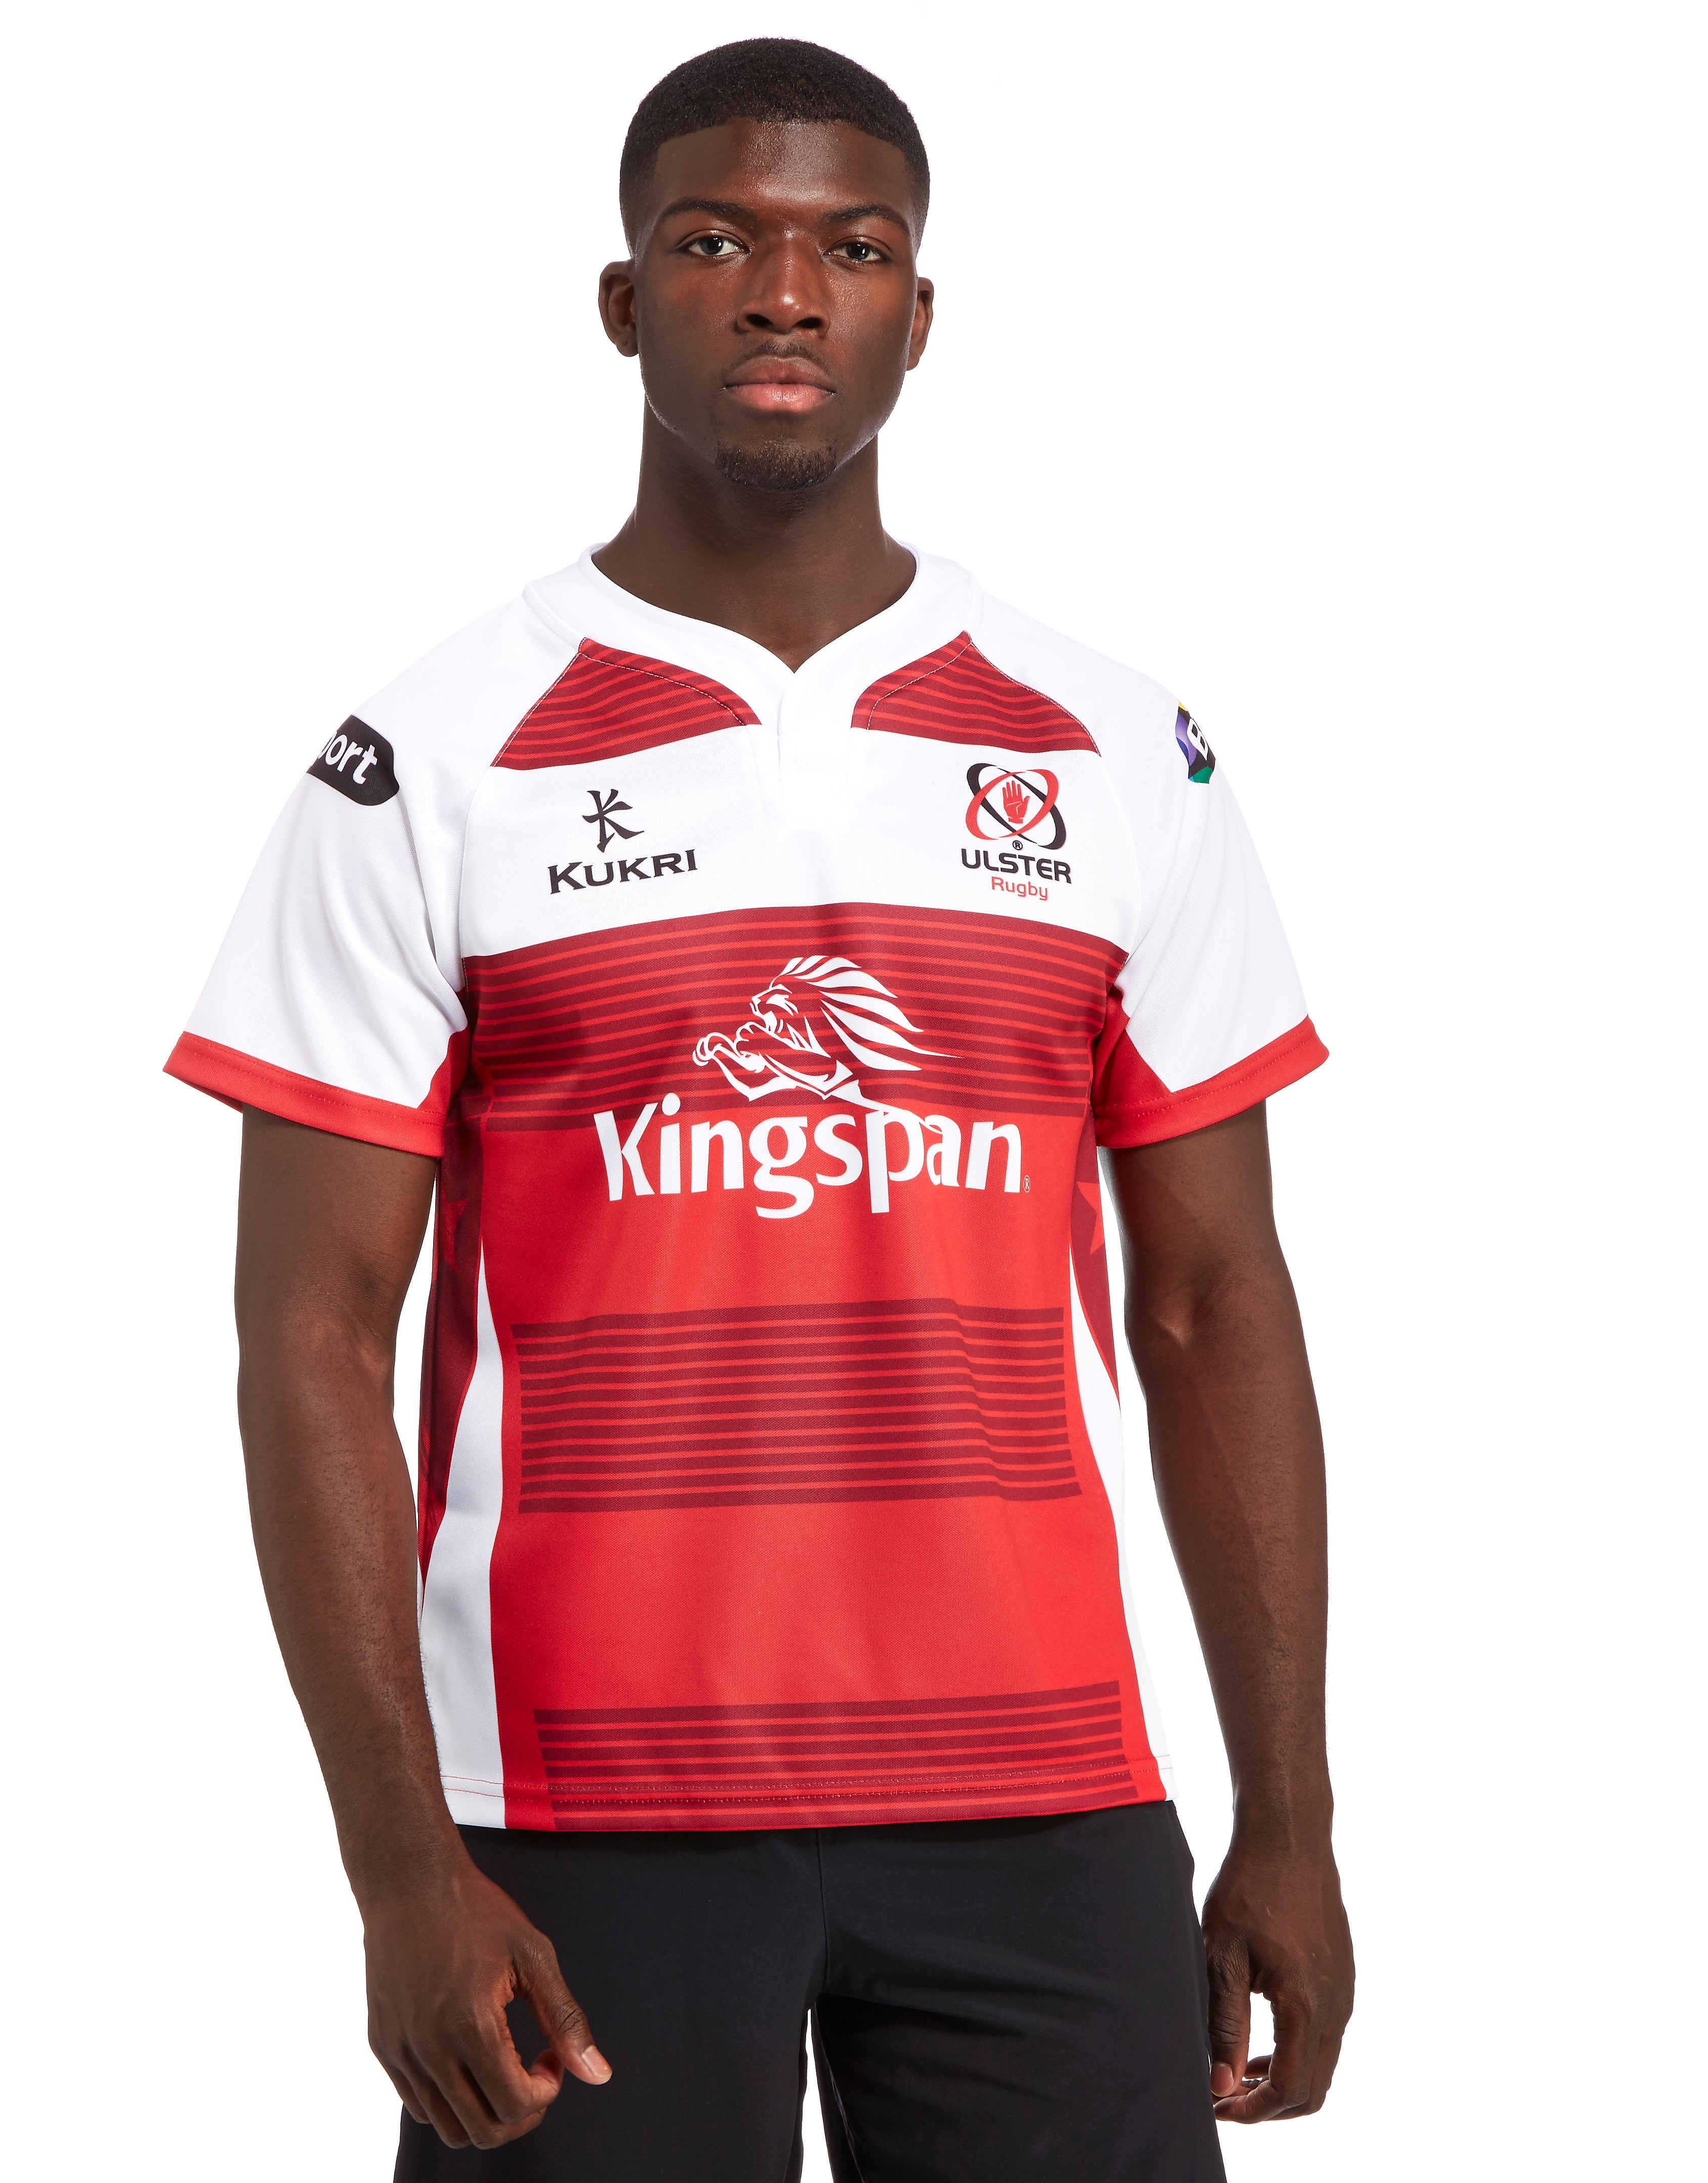 Kukri Ulster 2016/17 Champions Cup Jersey